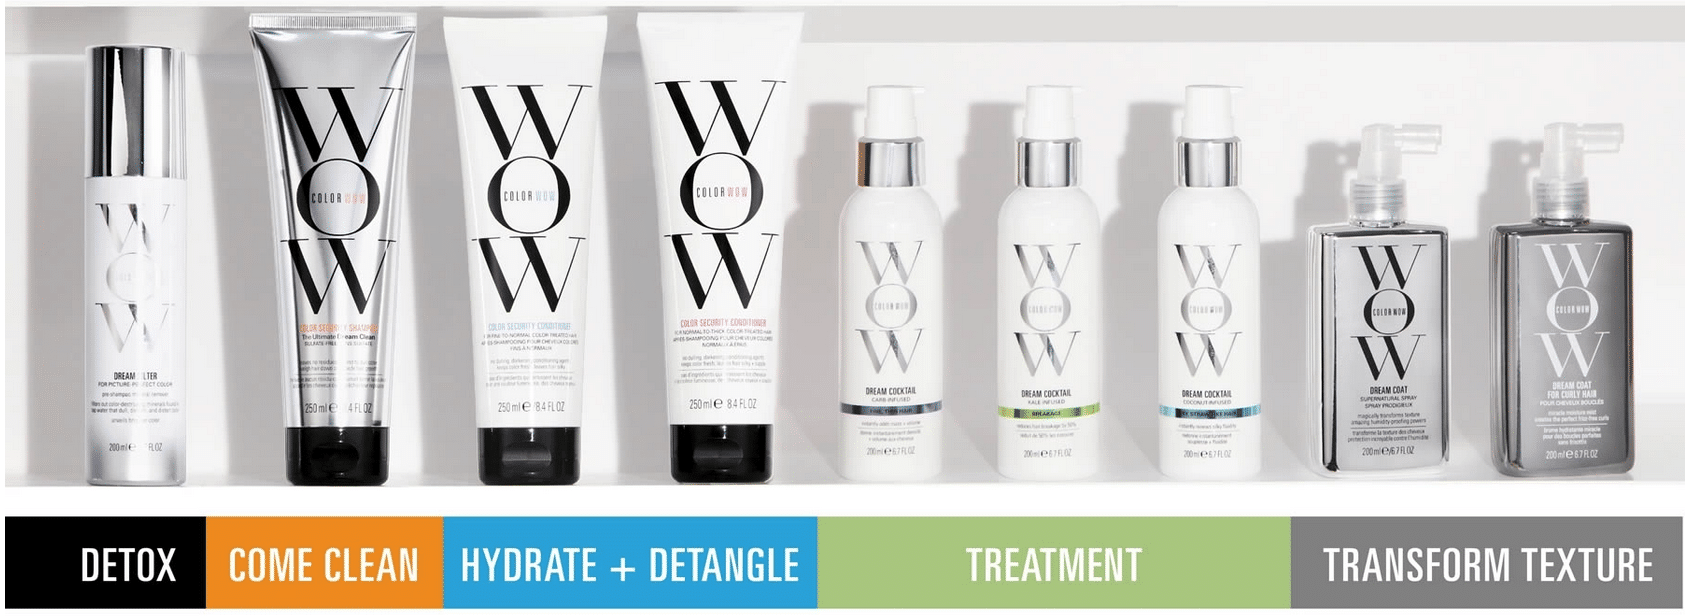 Meet Color Wow: Now Available at PENZONE - PENZONE Salons + Spas